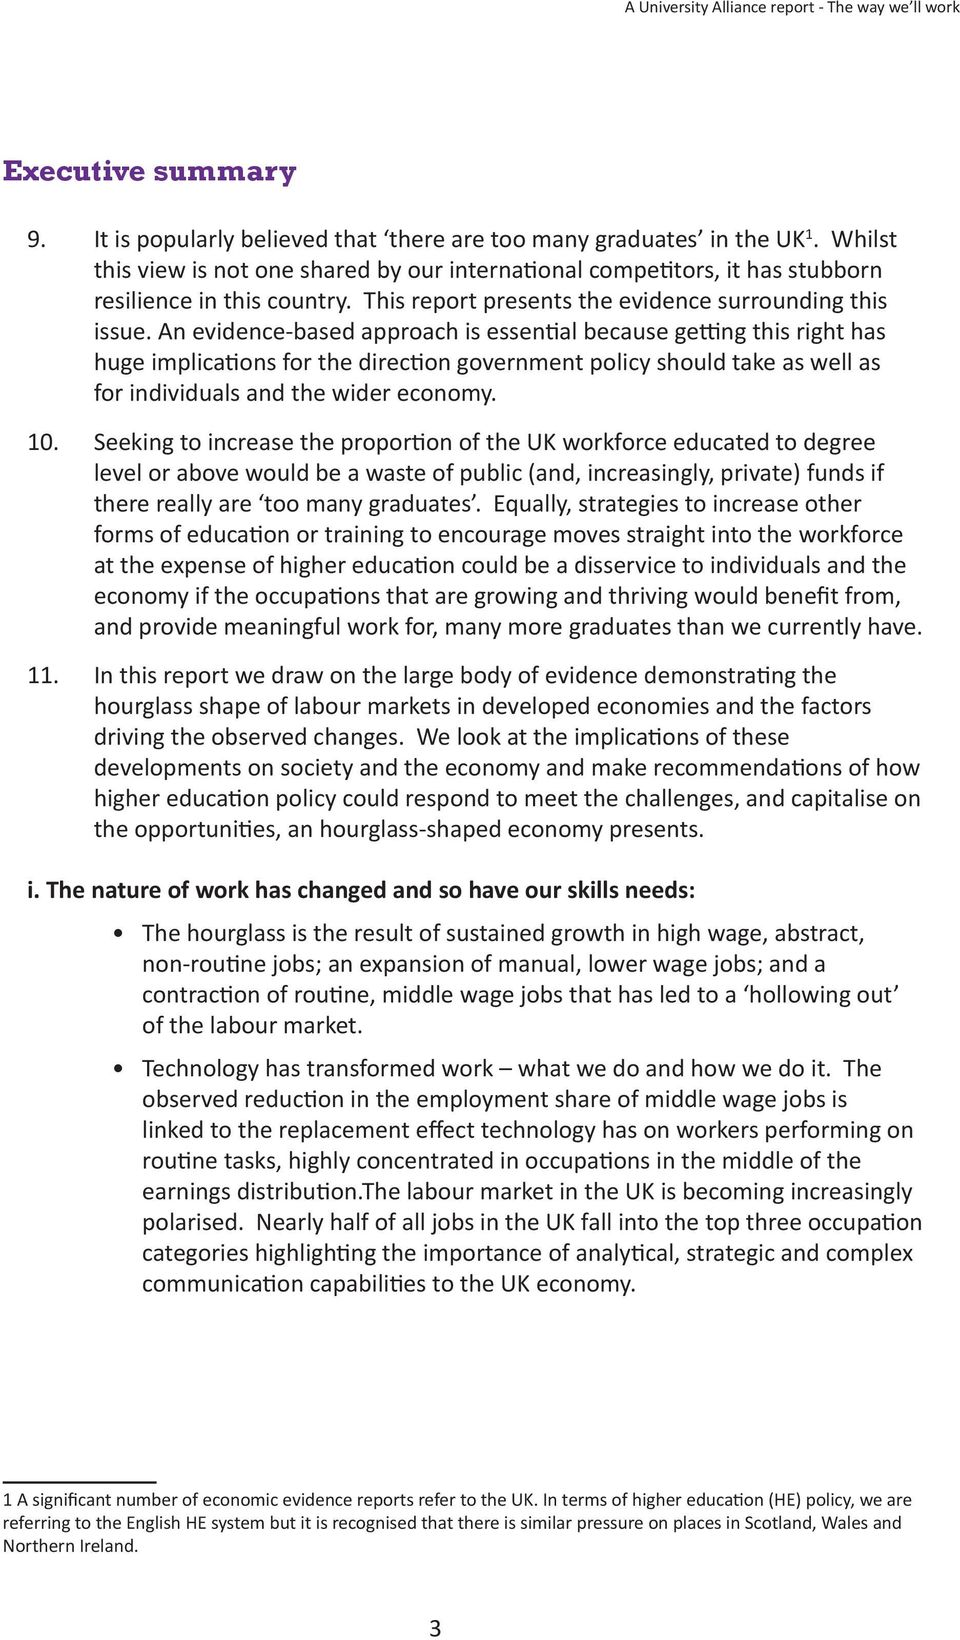 An evidence-based approach is essential because getting this right has huge implications for the direction government policy should take as well as for individuals and the wider economy. 10.